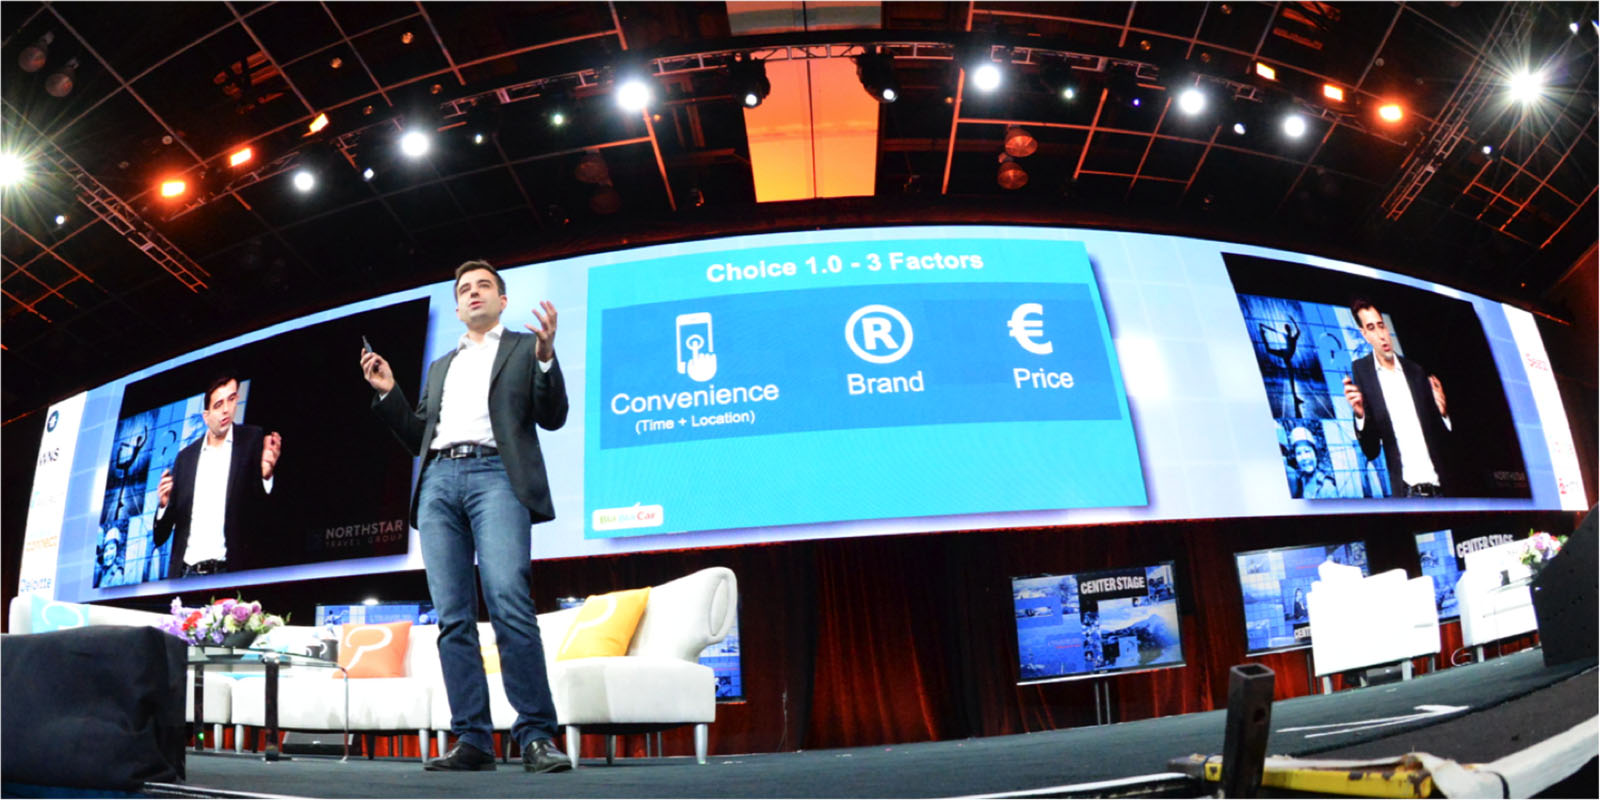 About The Phocuswright Conference - Center Stage Speaker